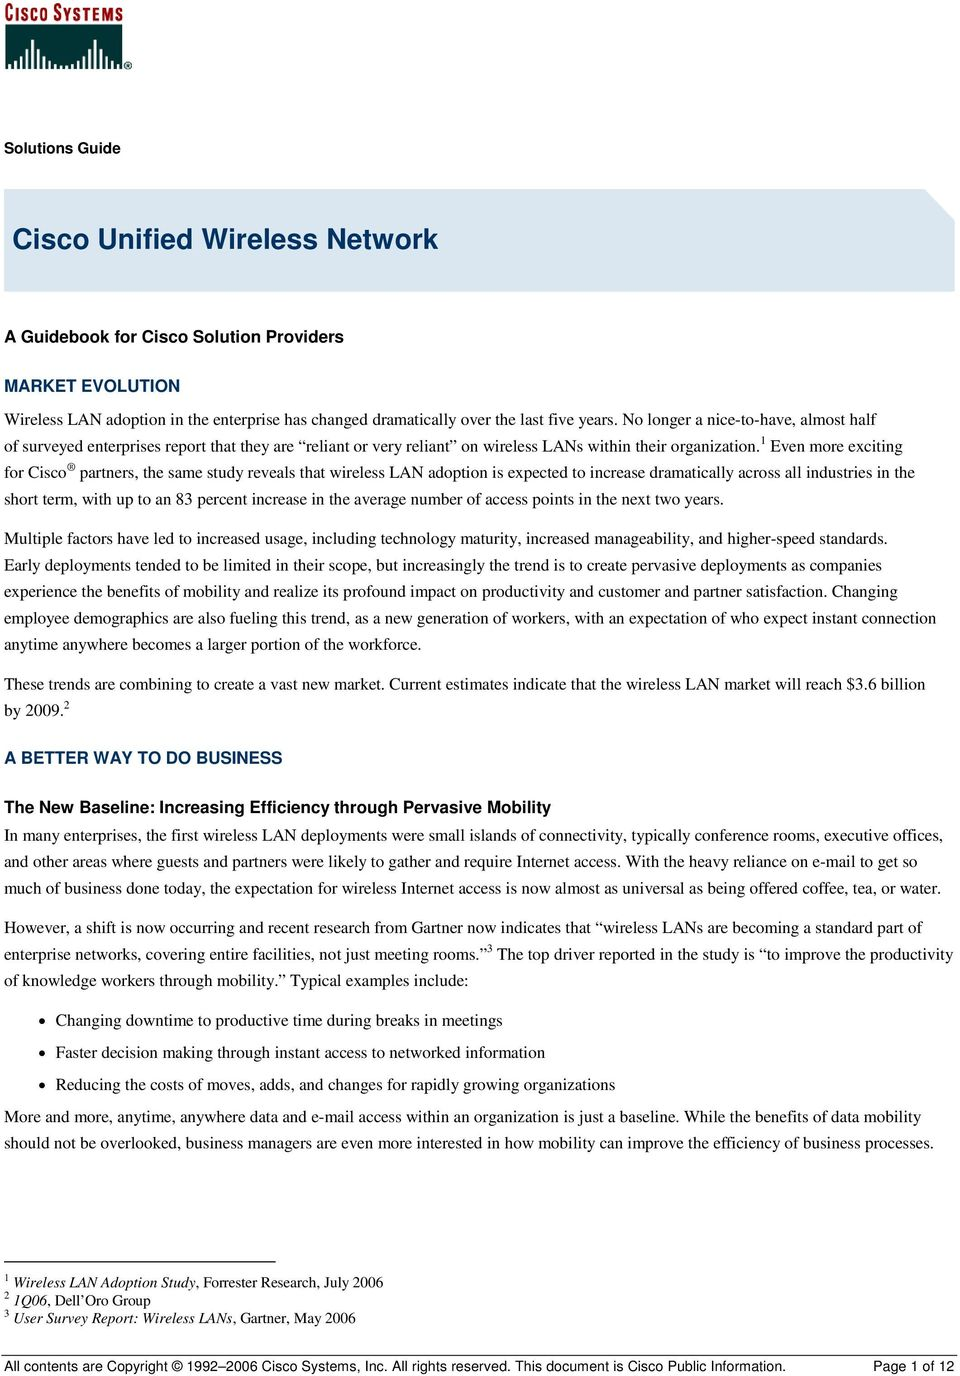 1 Even more exciting for Cisco partners, the same study reveals that wireless LAN adoption is expected to increase dramatically across all industries in the short term, with up to an 83 percent